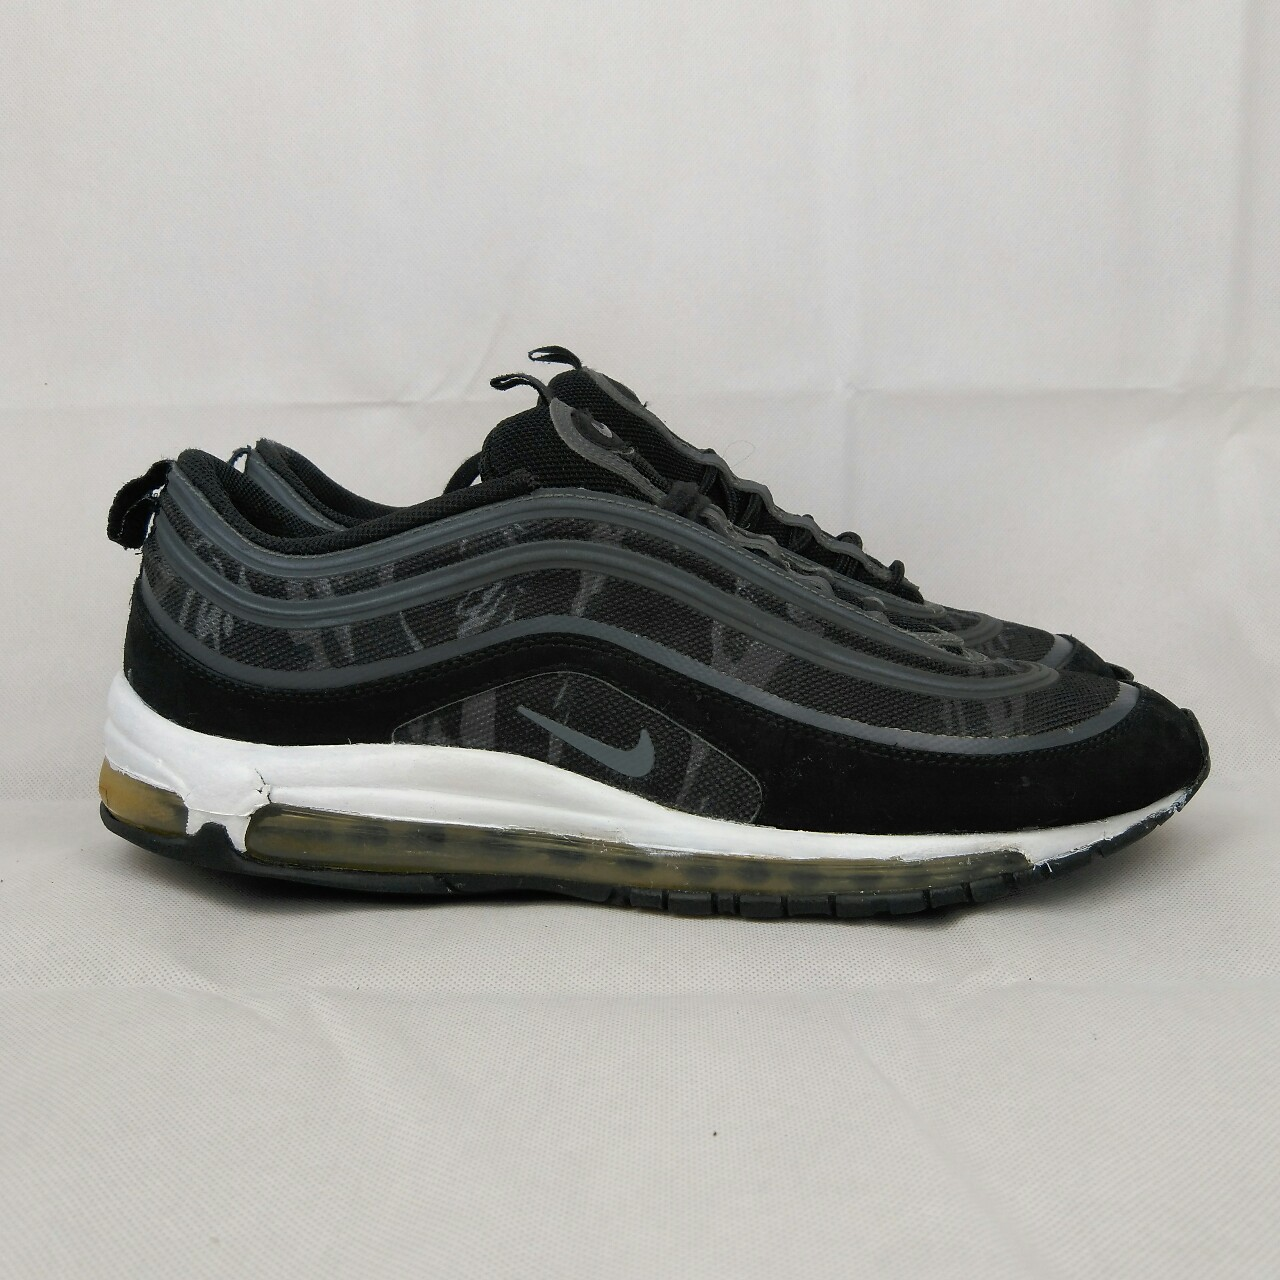 Nike Air max 97 premium tape camo 'black and cool Depop